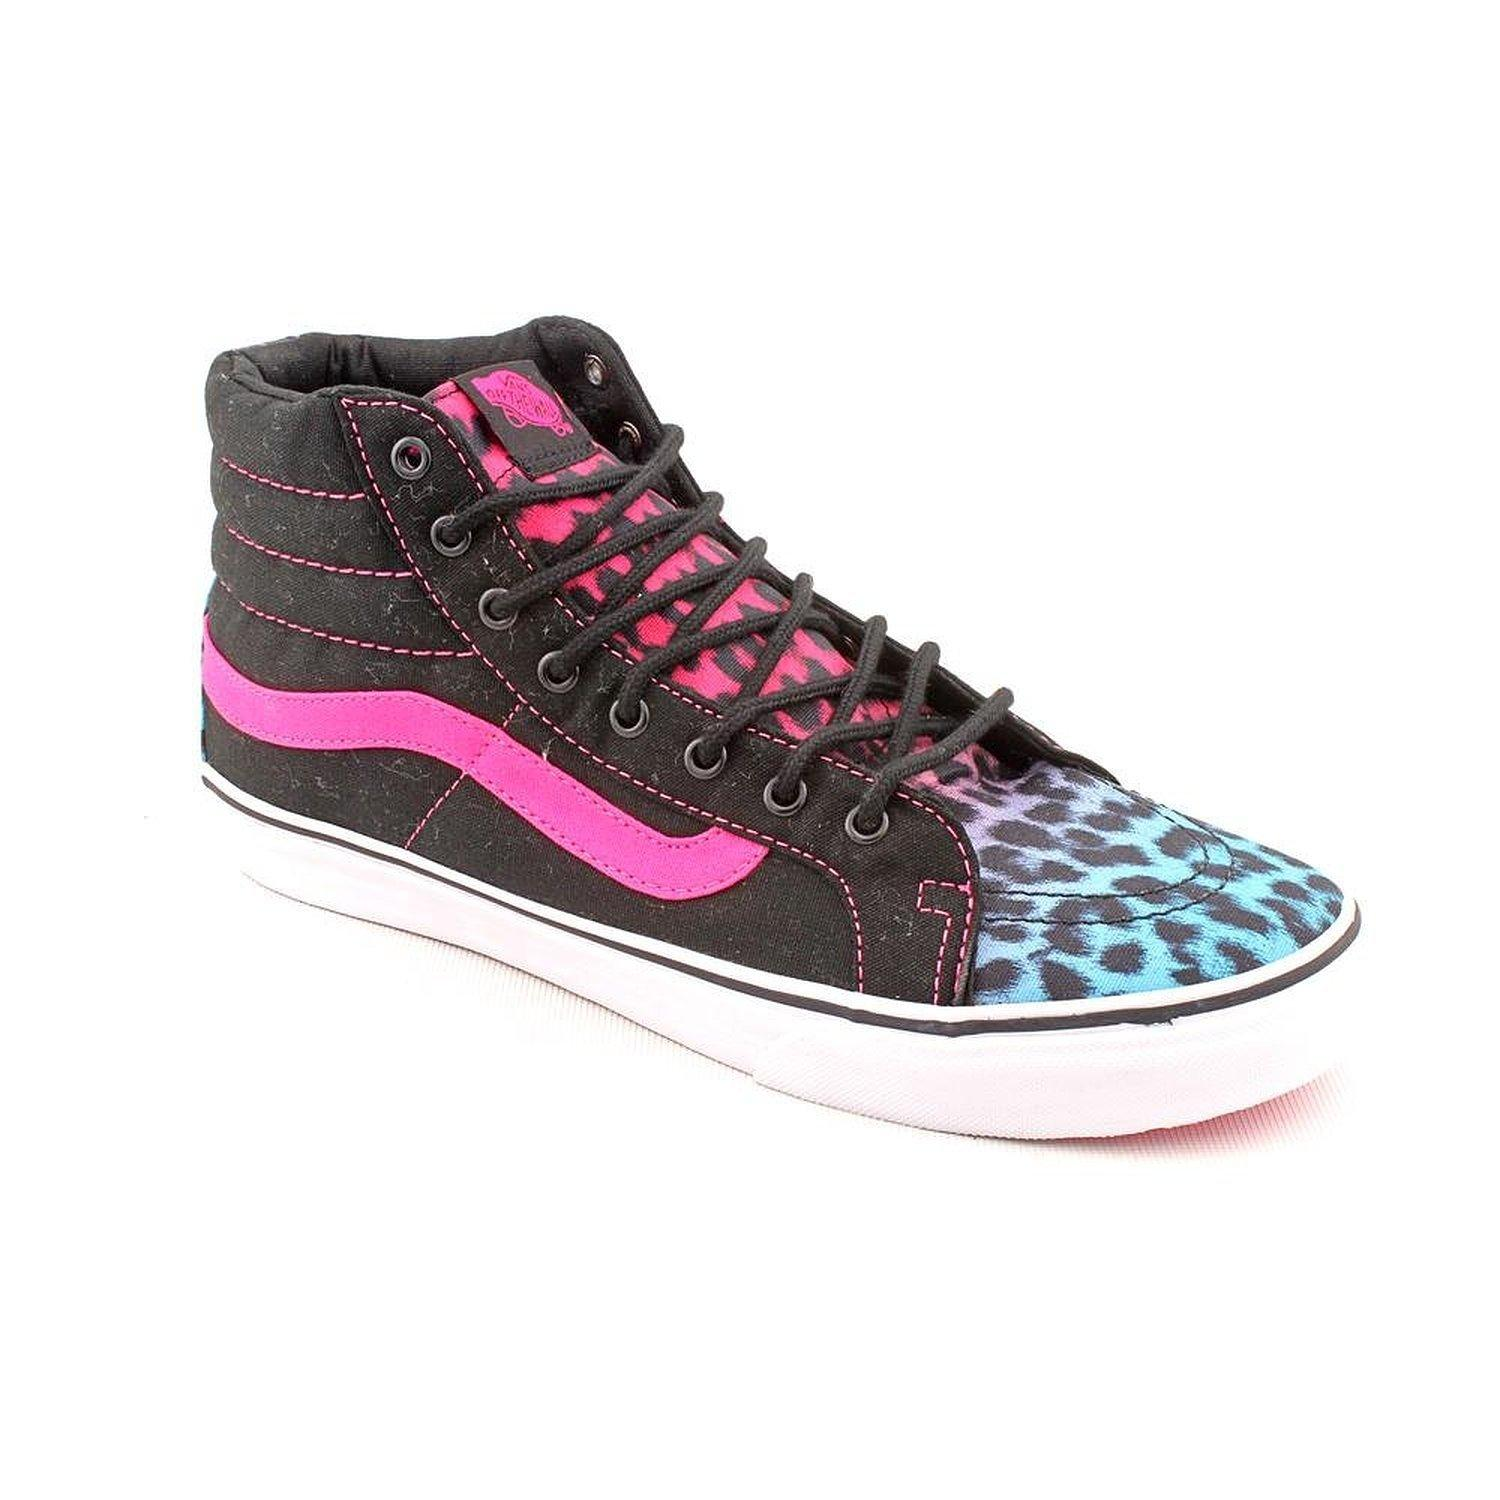 91c5fa9776 Details about Vans Womens Sk8-Hi Slim Leopard Magenta Blue Black  Skateboarding Shoes